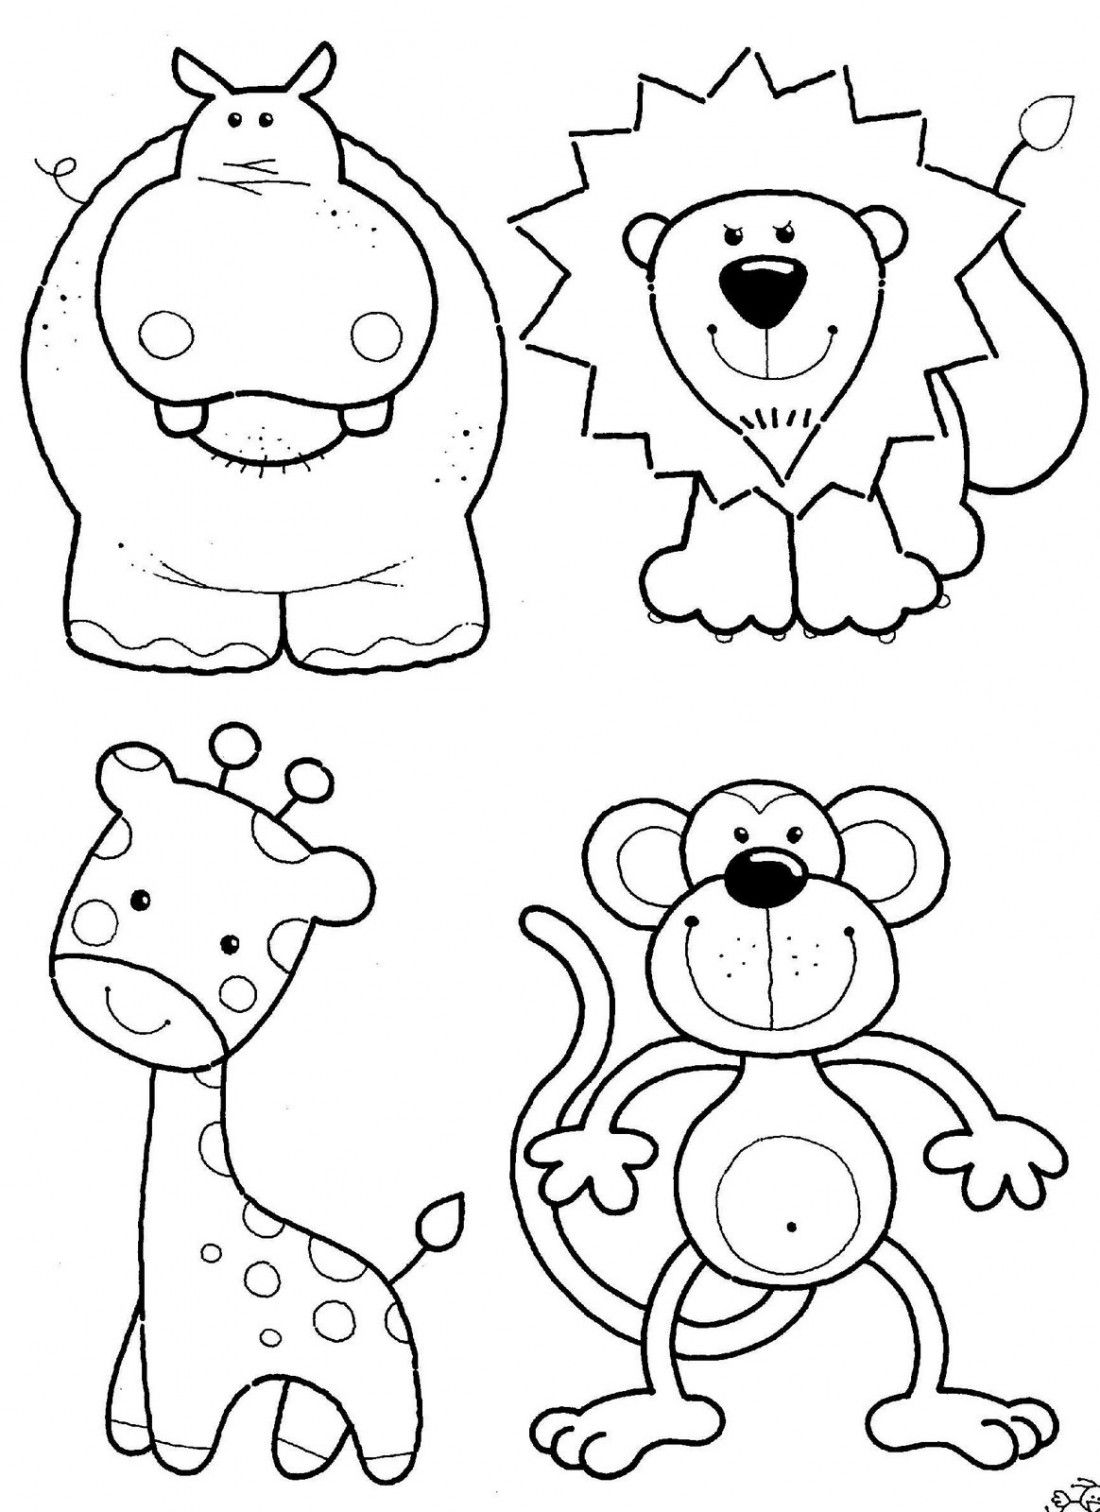 Animals Images For Coloring Raskraski Knizhka Raskraska